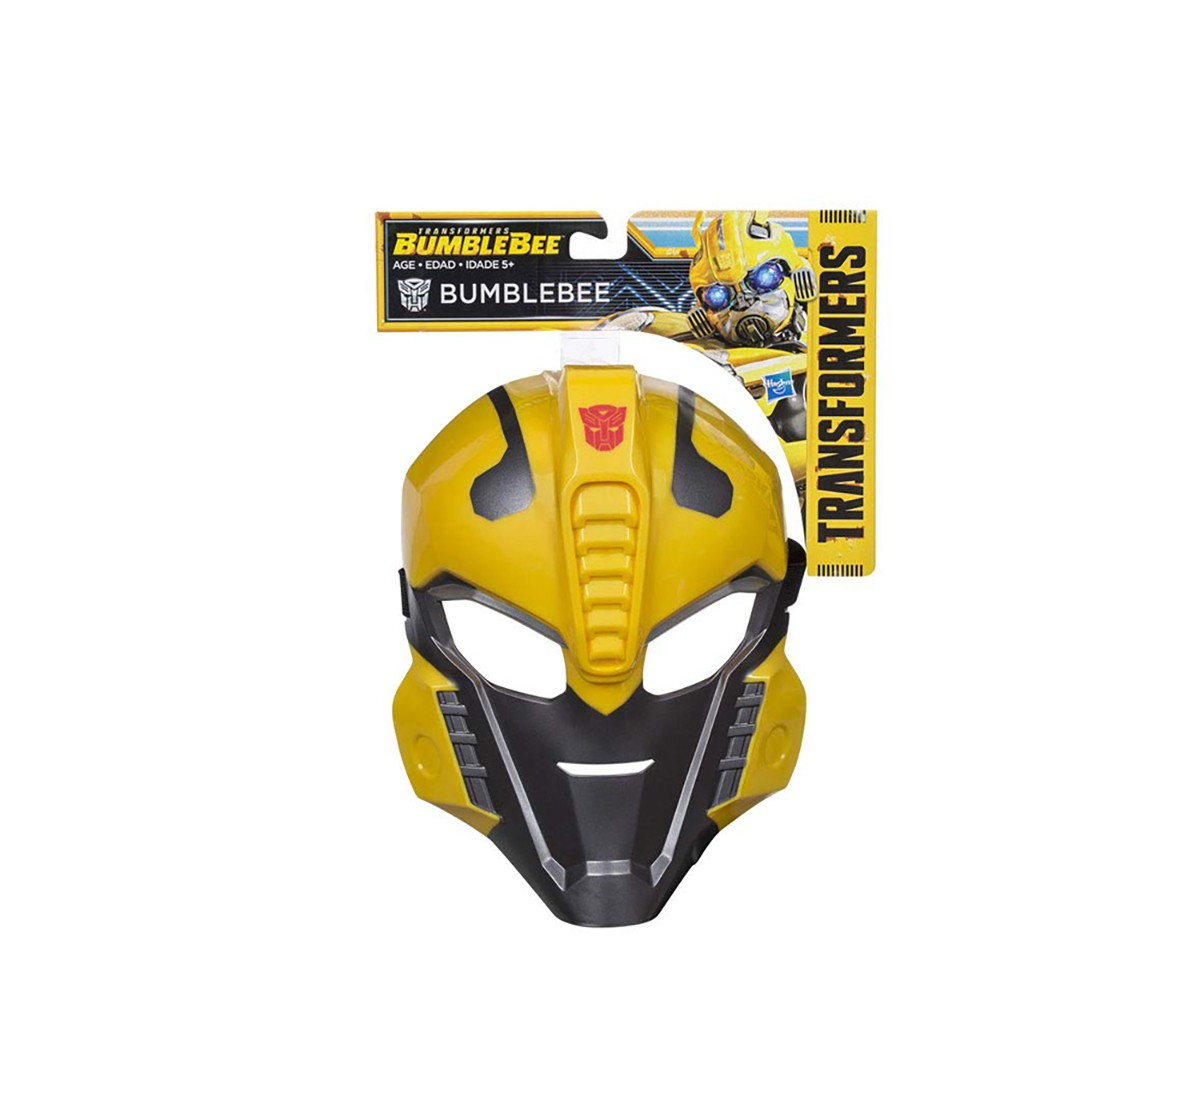 Transformers Bumblebee Mask Action Figure Play Sets for Kids age 5Y+